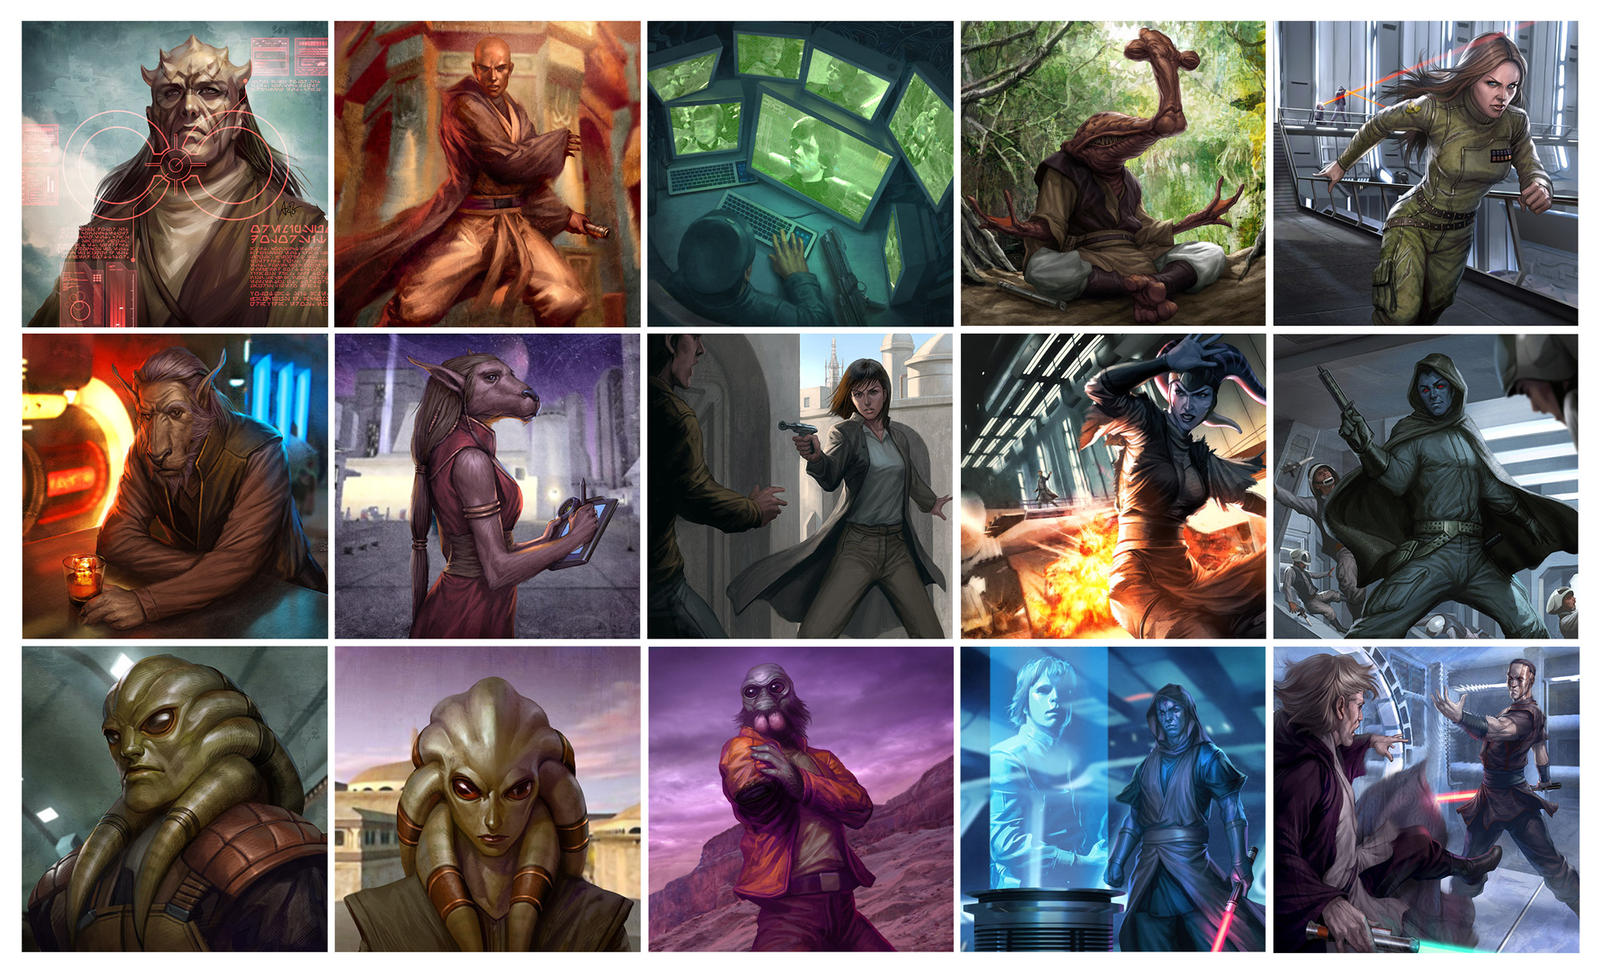 Star Wars TCG by Artgerm